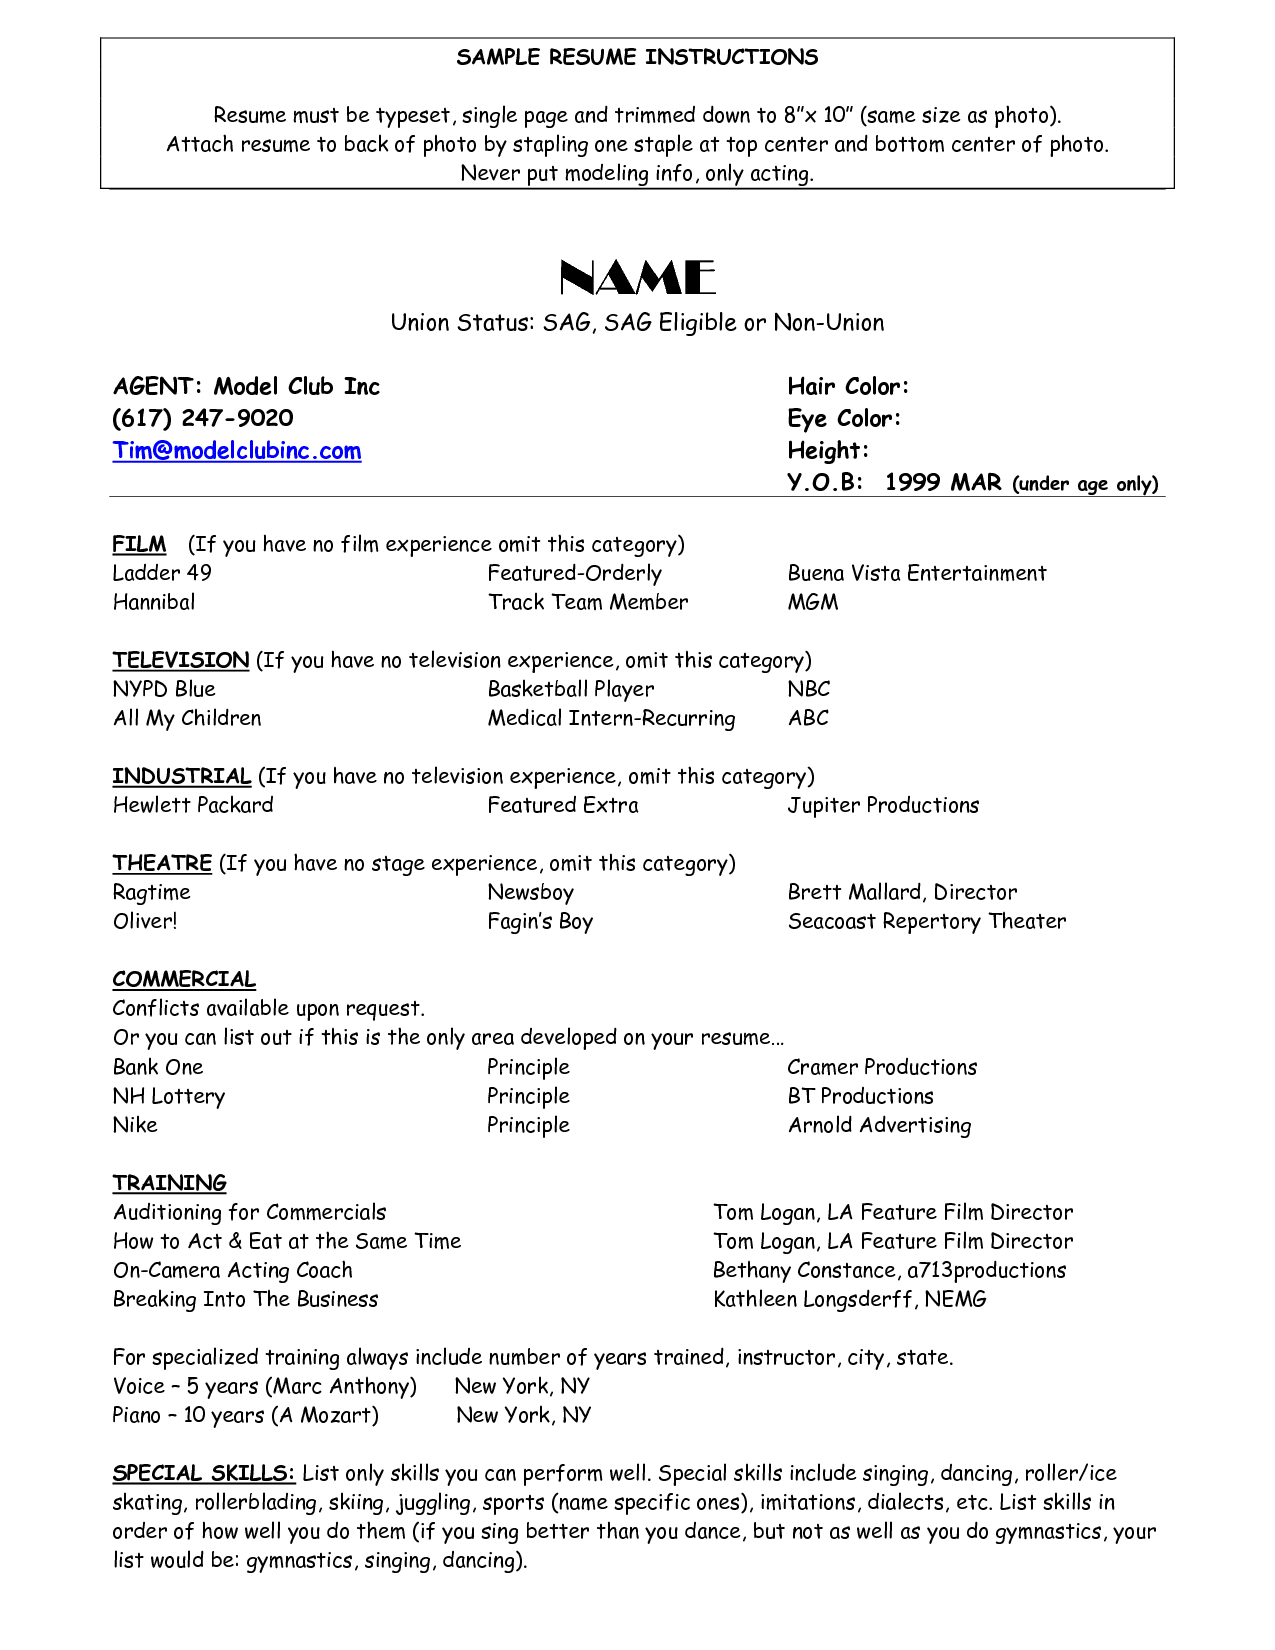 Acting Resume Examples Resume For Child Actor  Scope Of Work Template  Special Needs